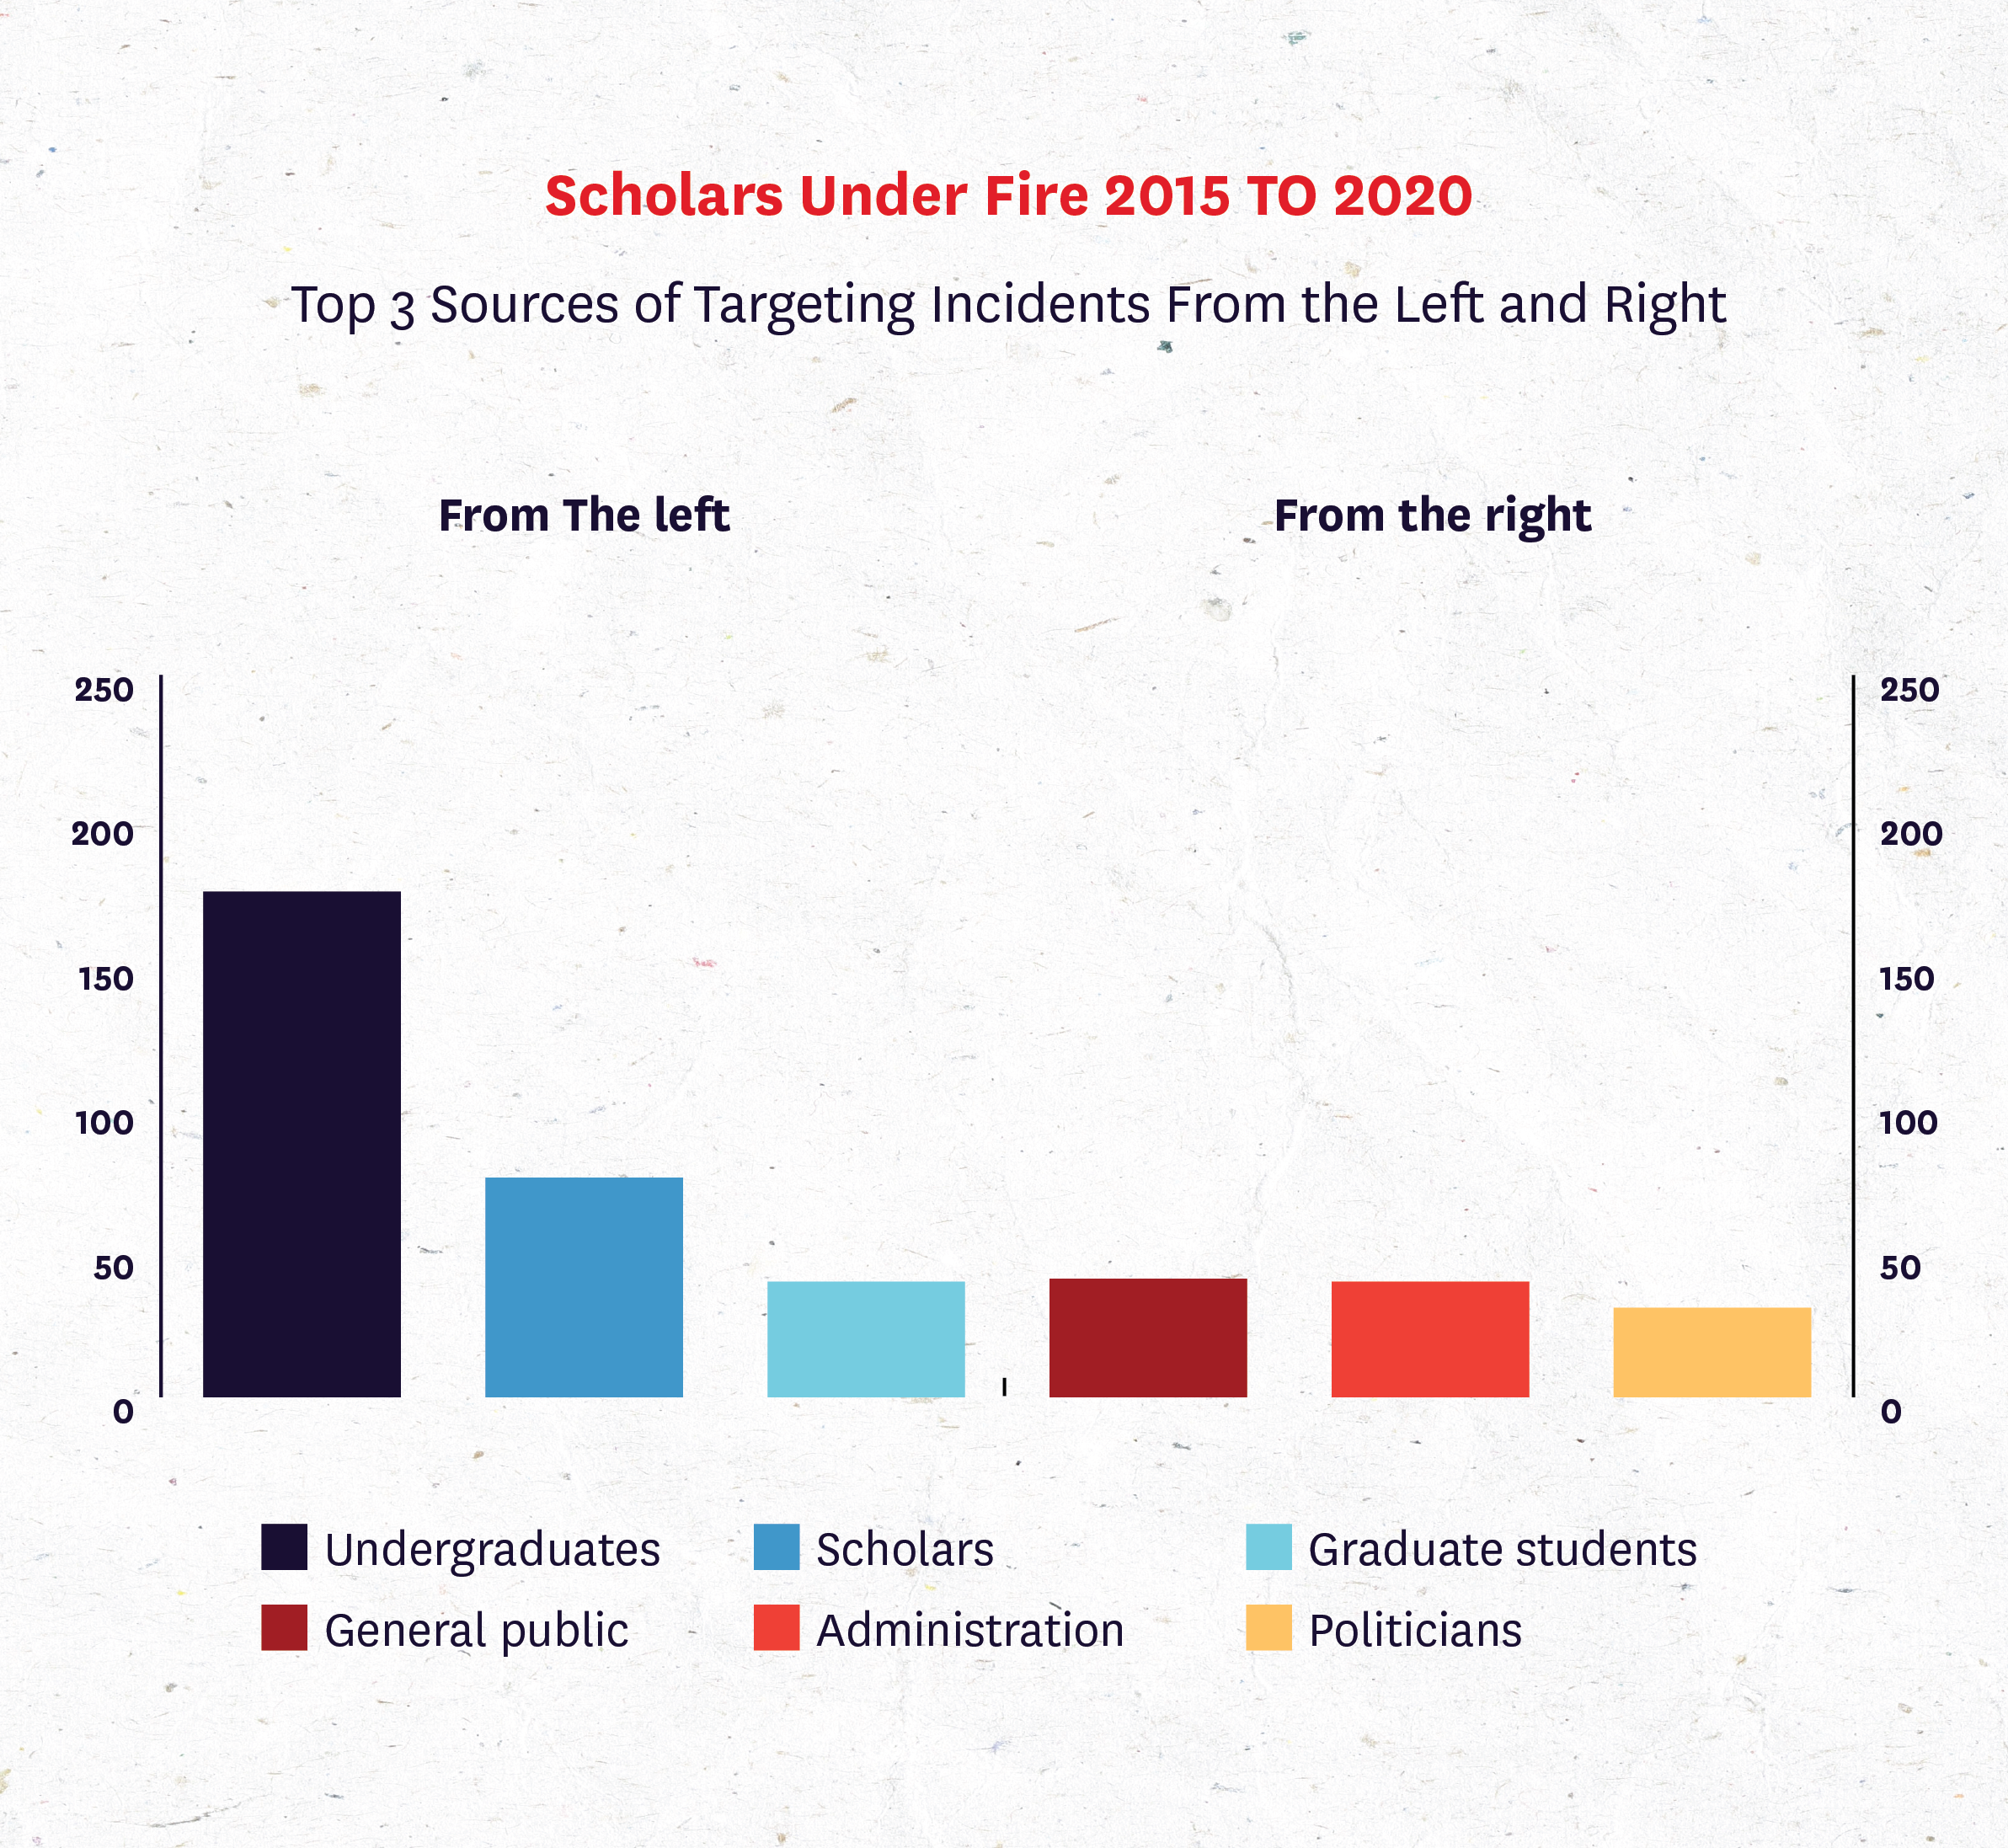 Bar graph showing Top 3 Sources of Targeting Incidents from the Left and Right.